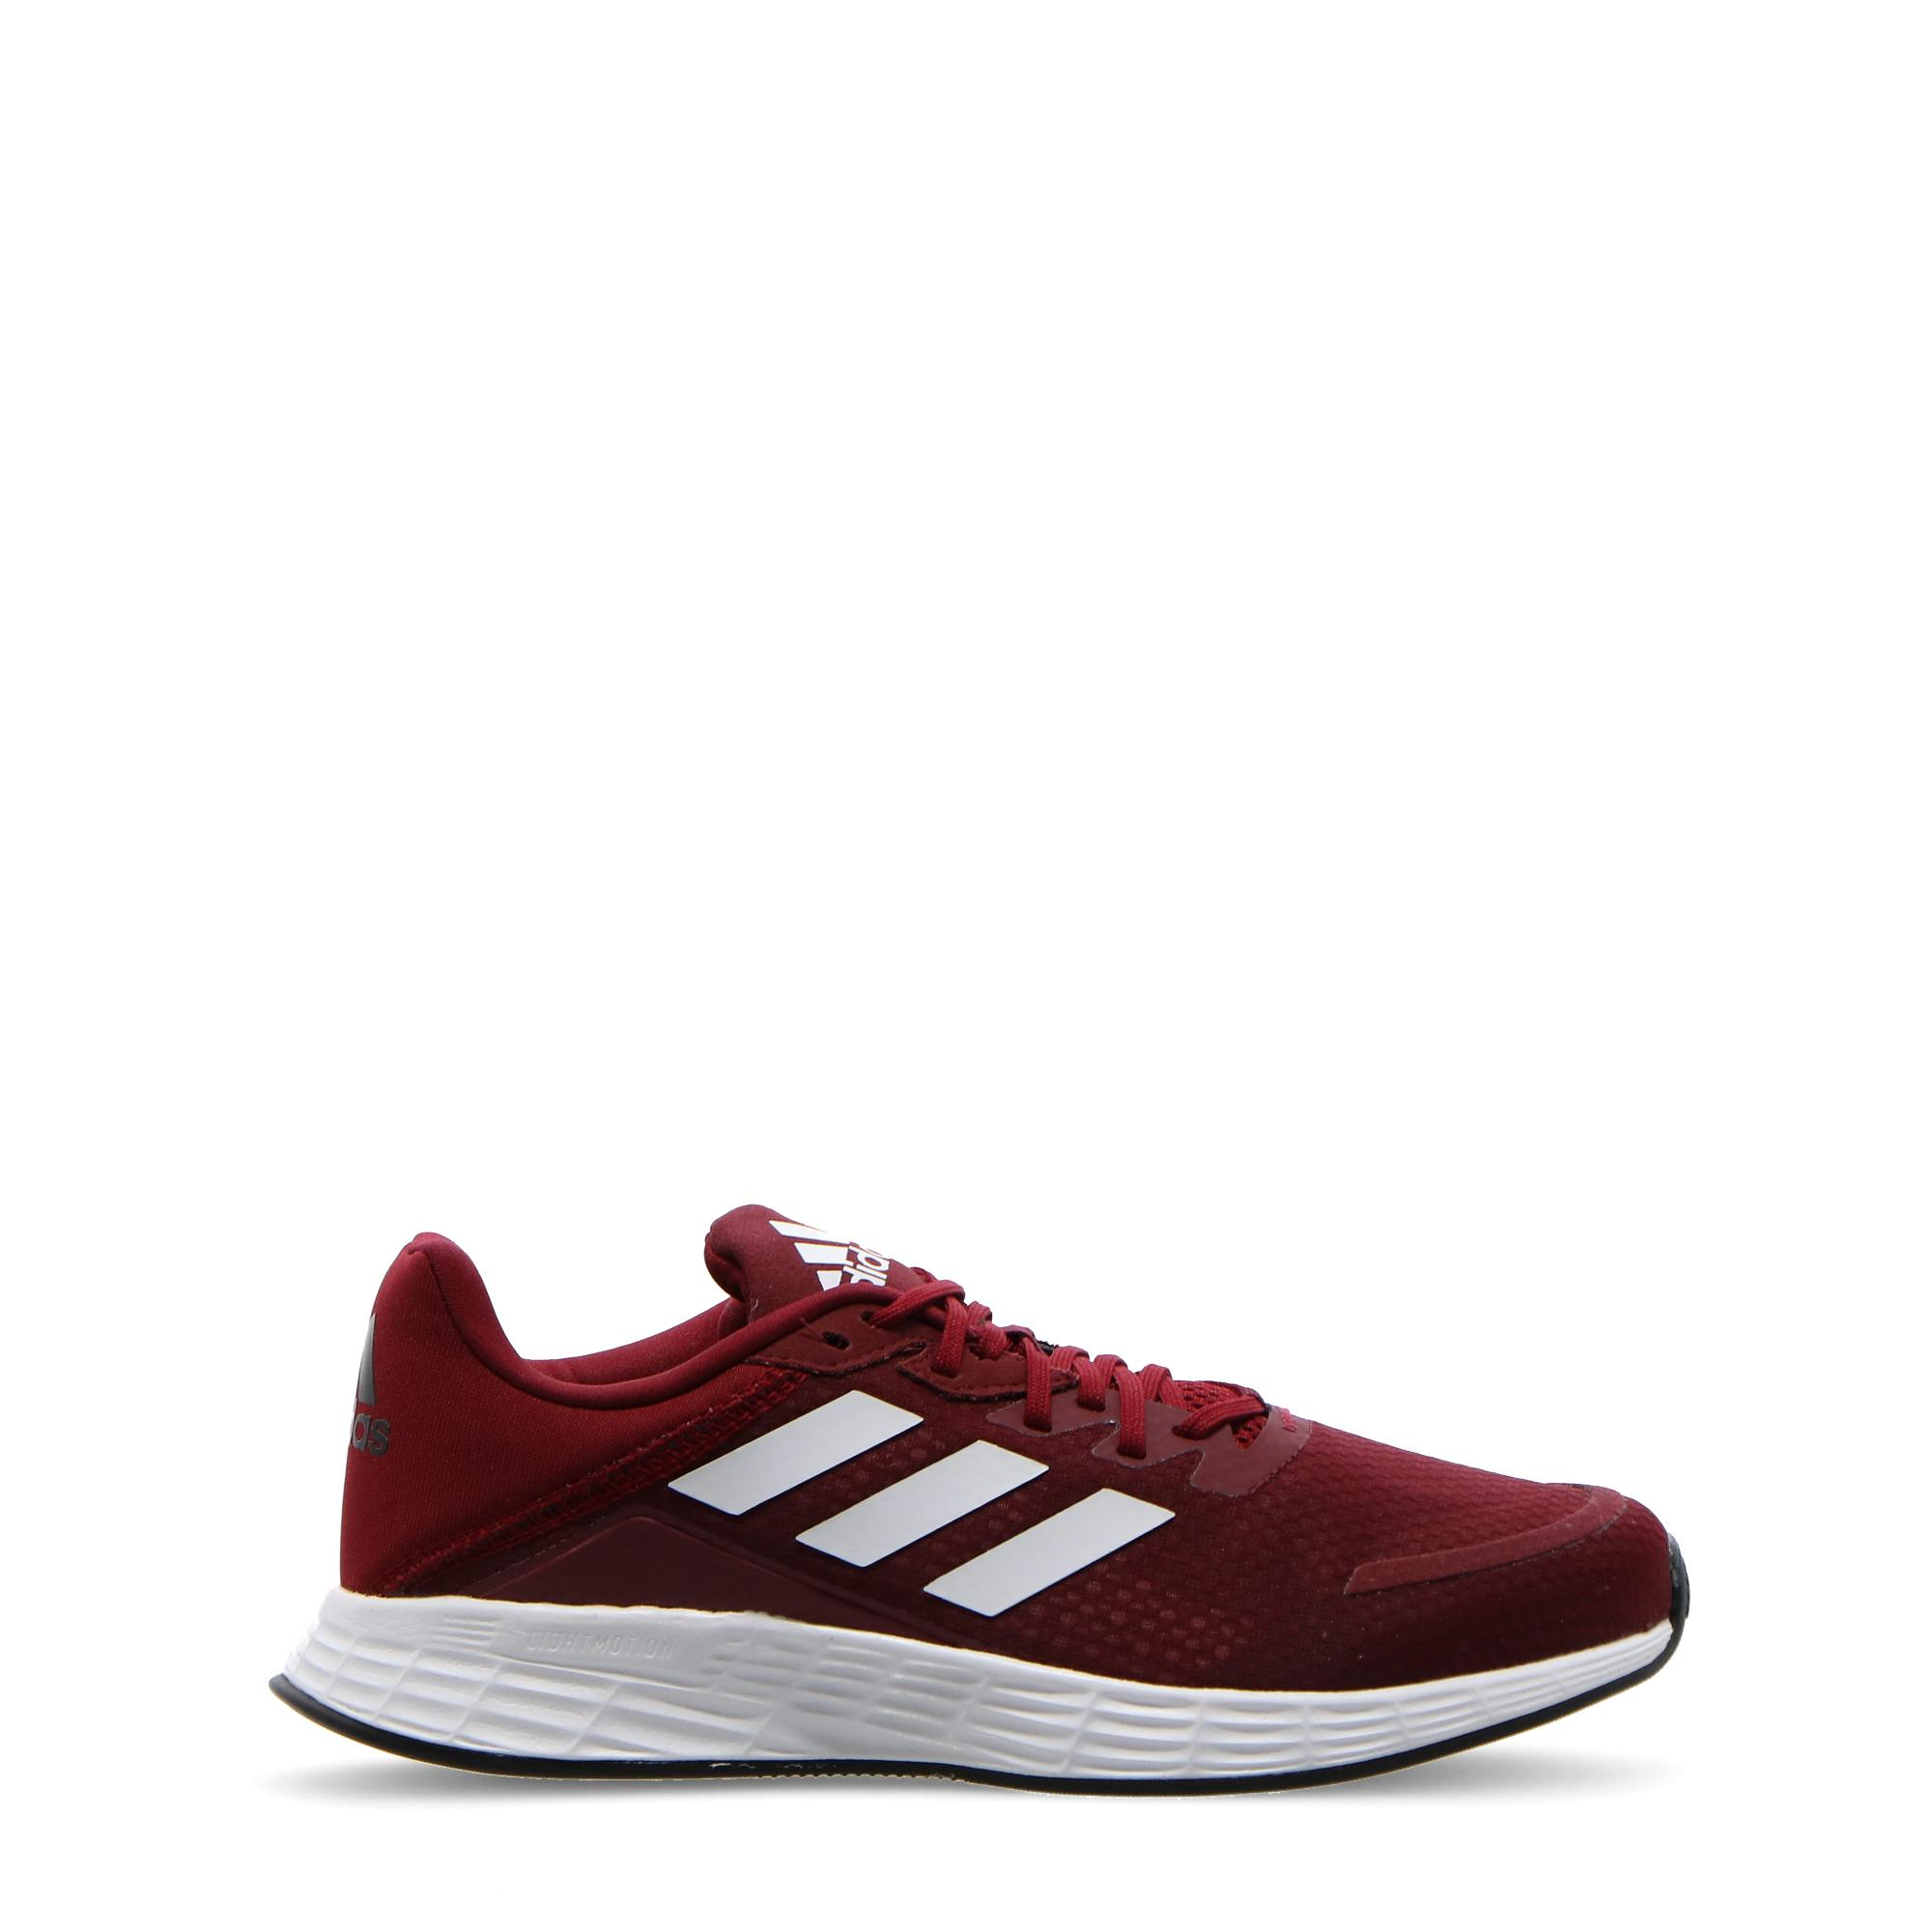 Adidas Duramo Sl Colleg burgundy white black